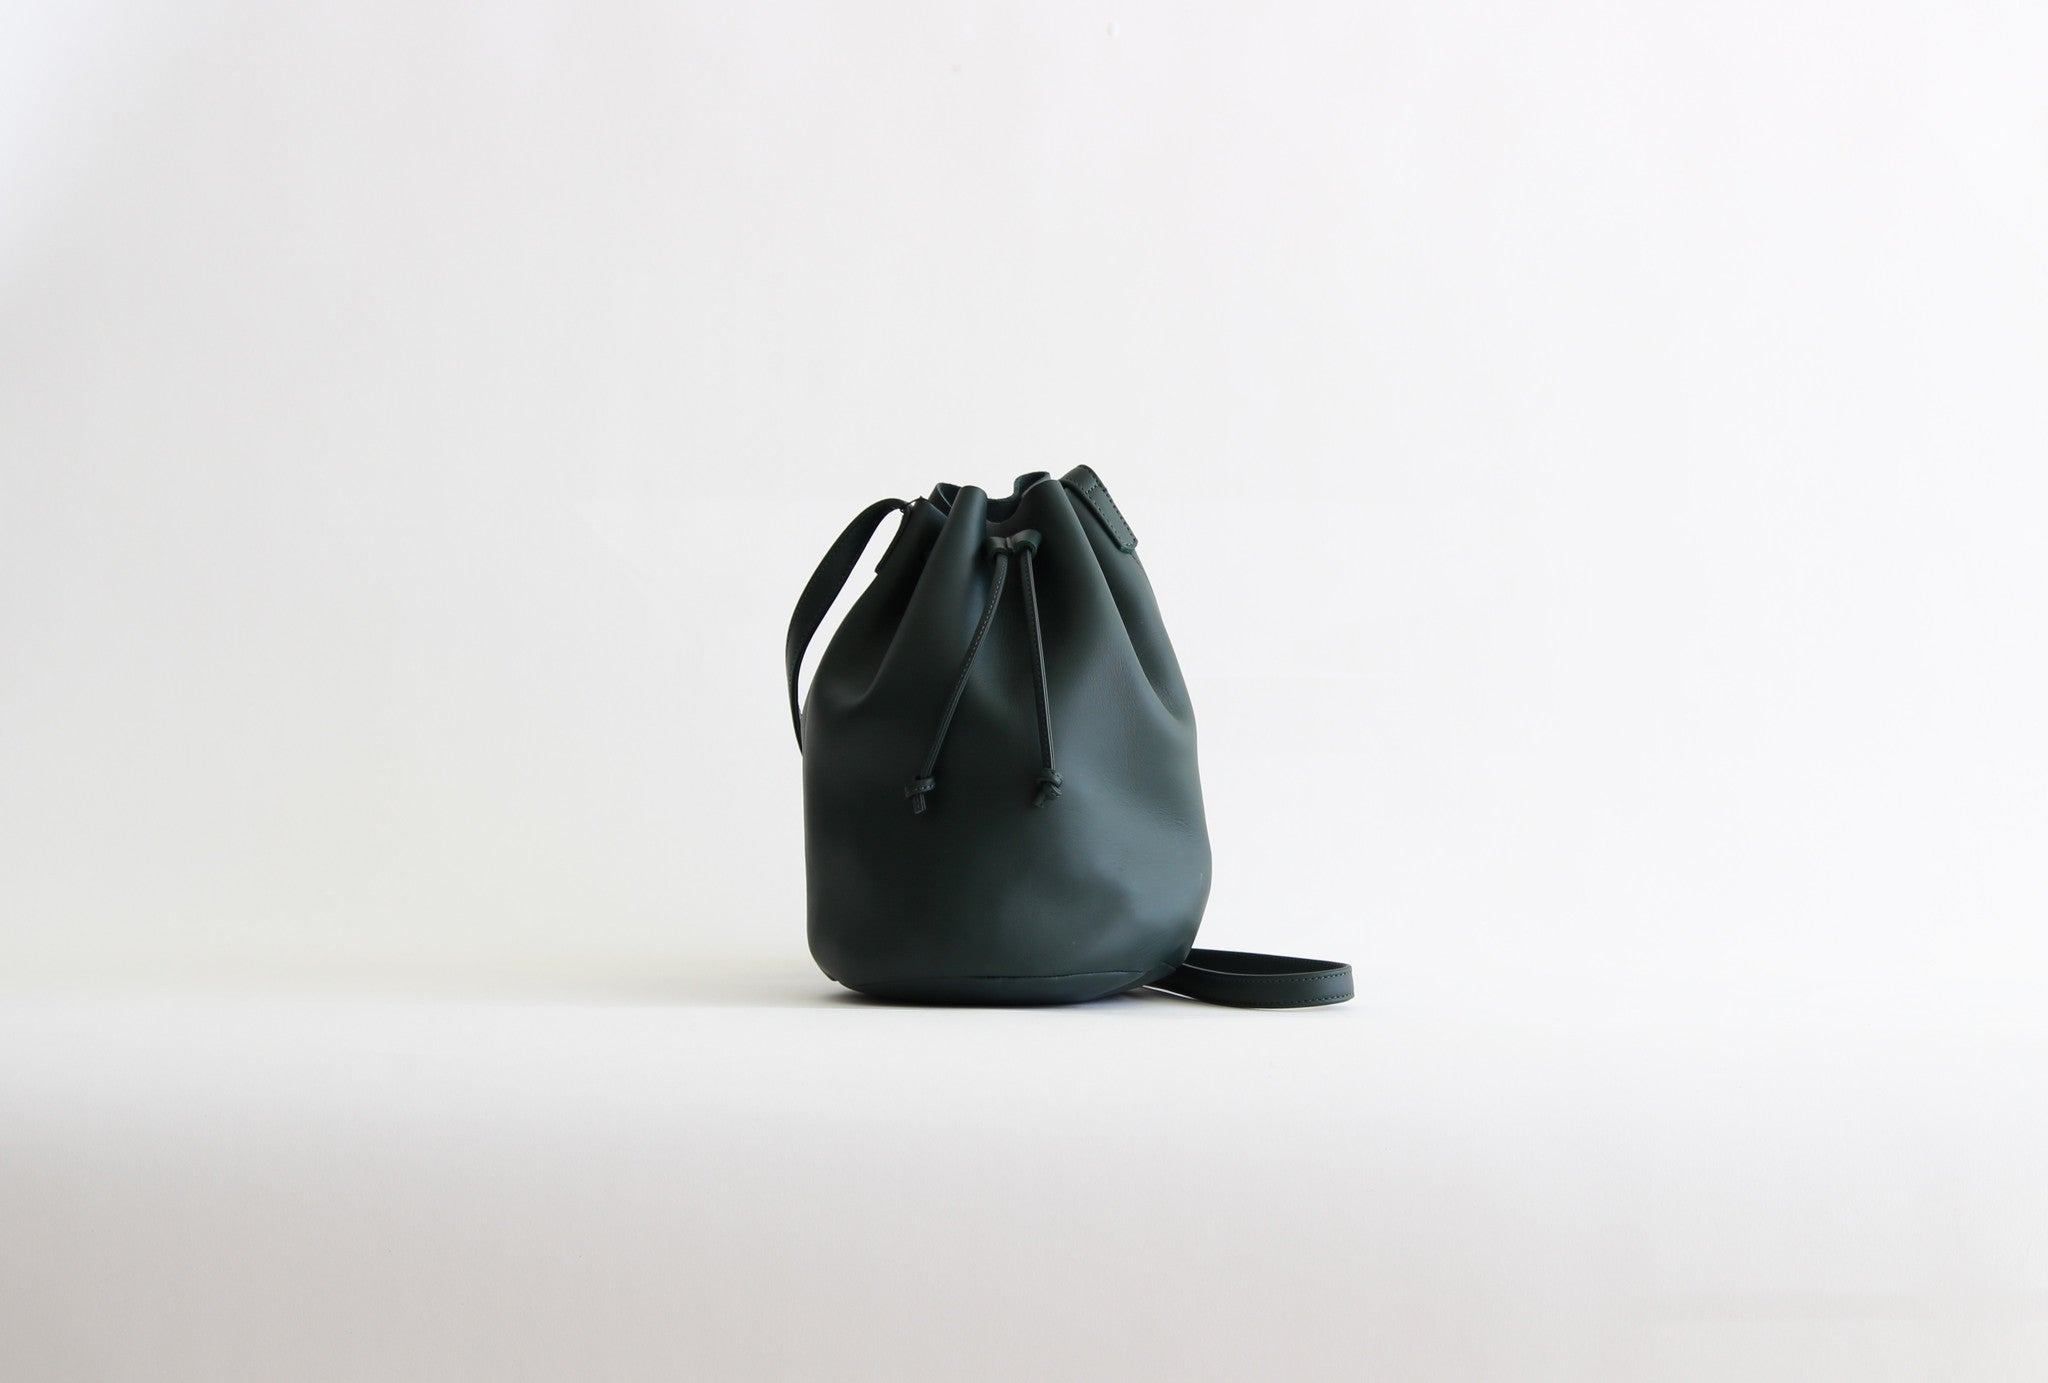 baggu leather drawstring bag dark green palm purse